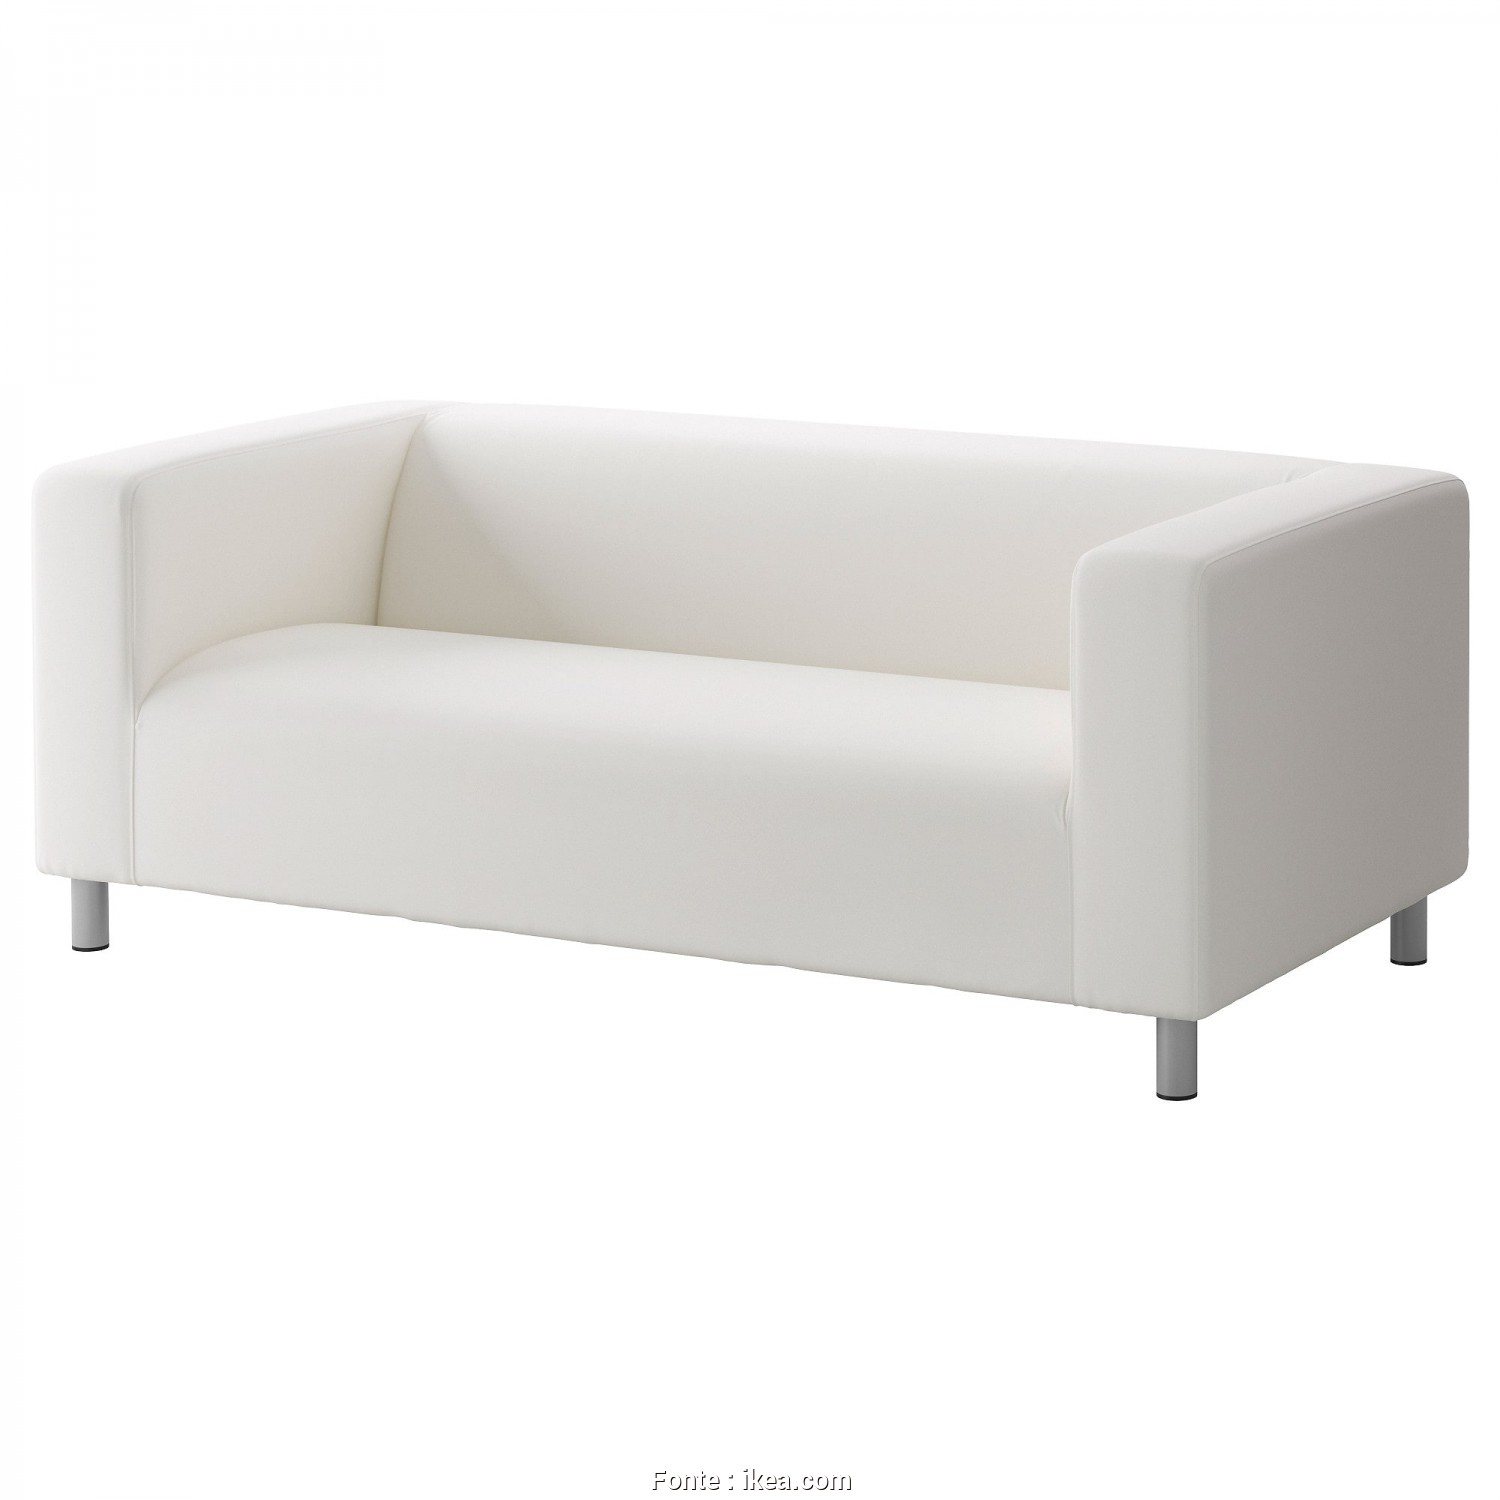 Klippan Ikea 4 Places, Casuale IKEA KLIPPAN 2-Seat Sofa, Cover Is Easy To Keep Clean Since It Is